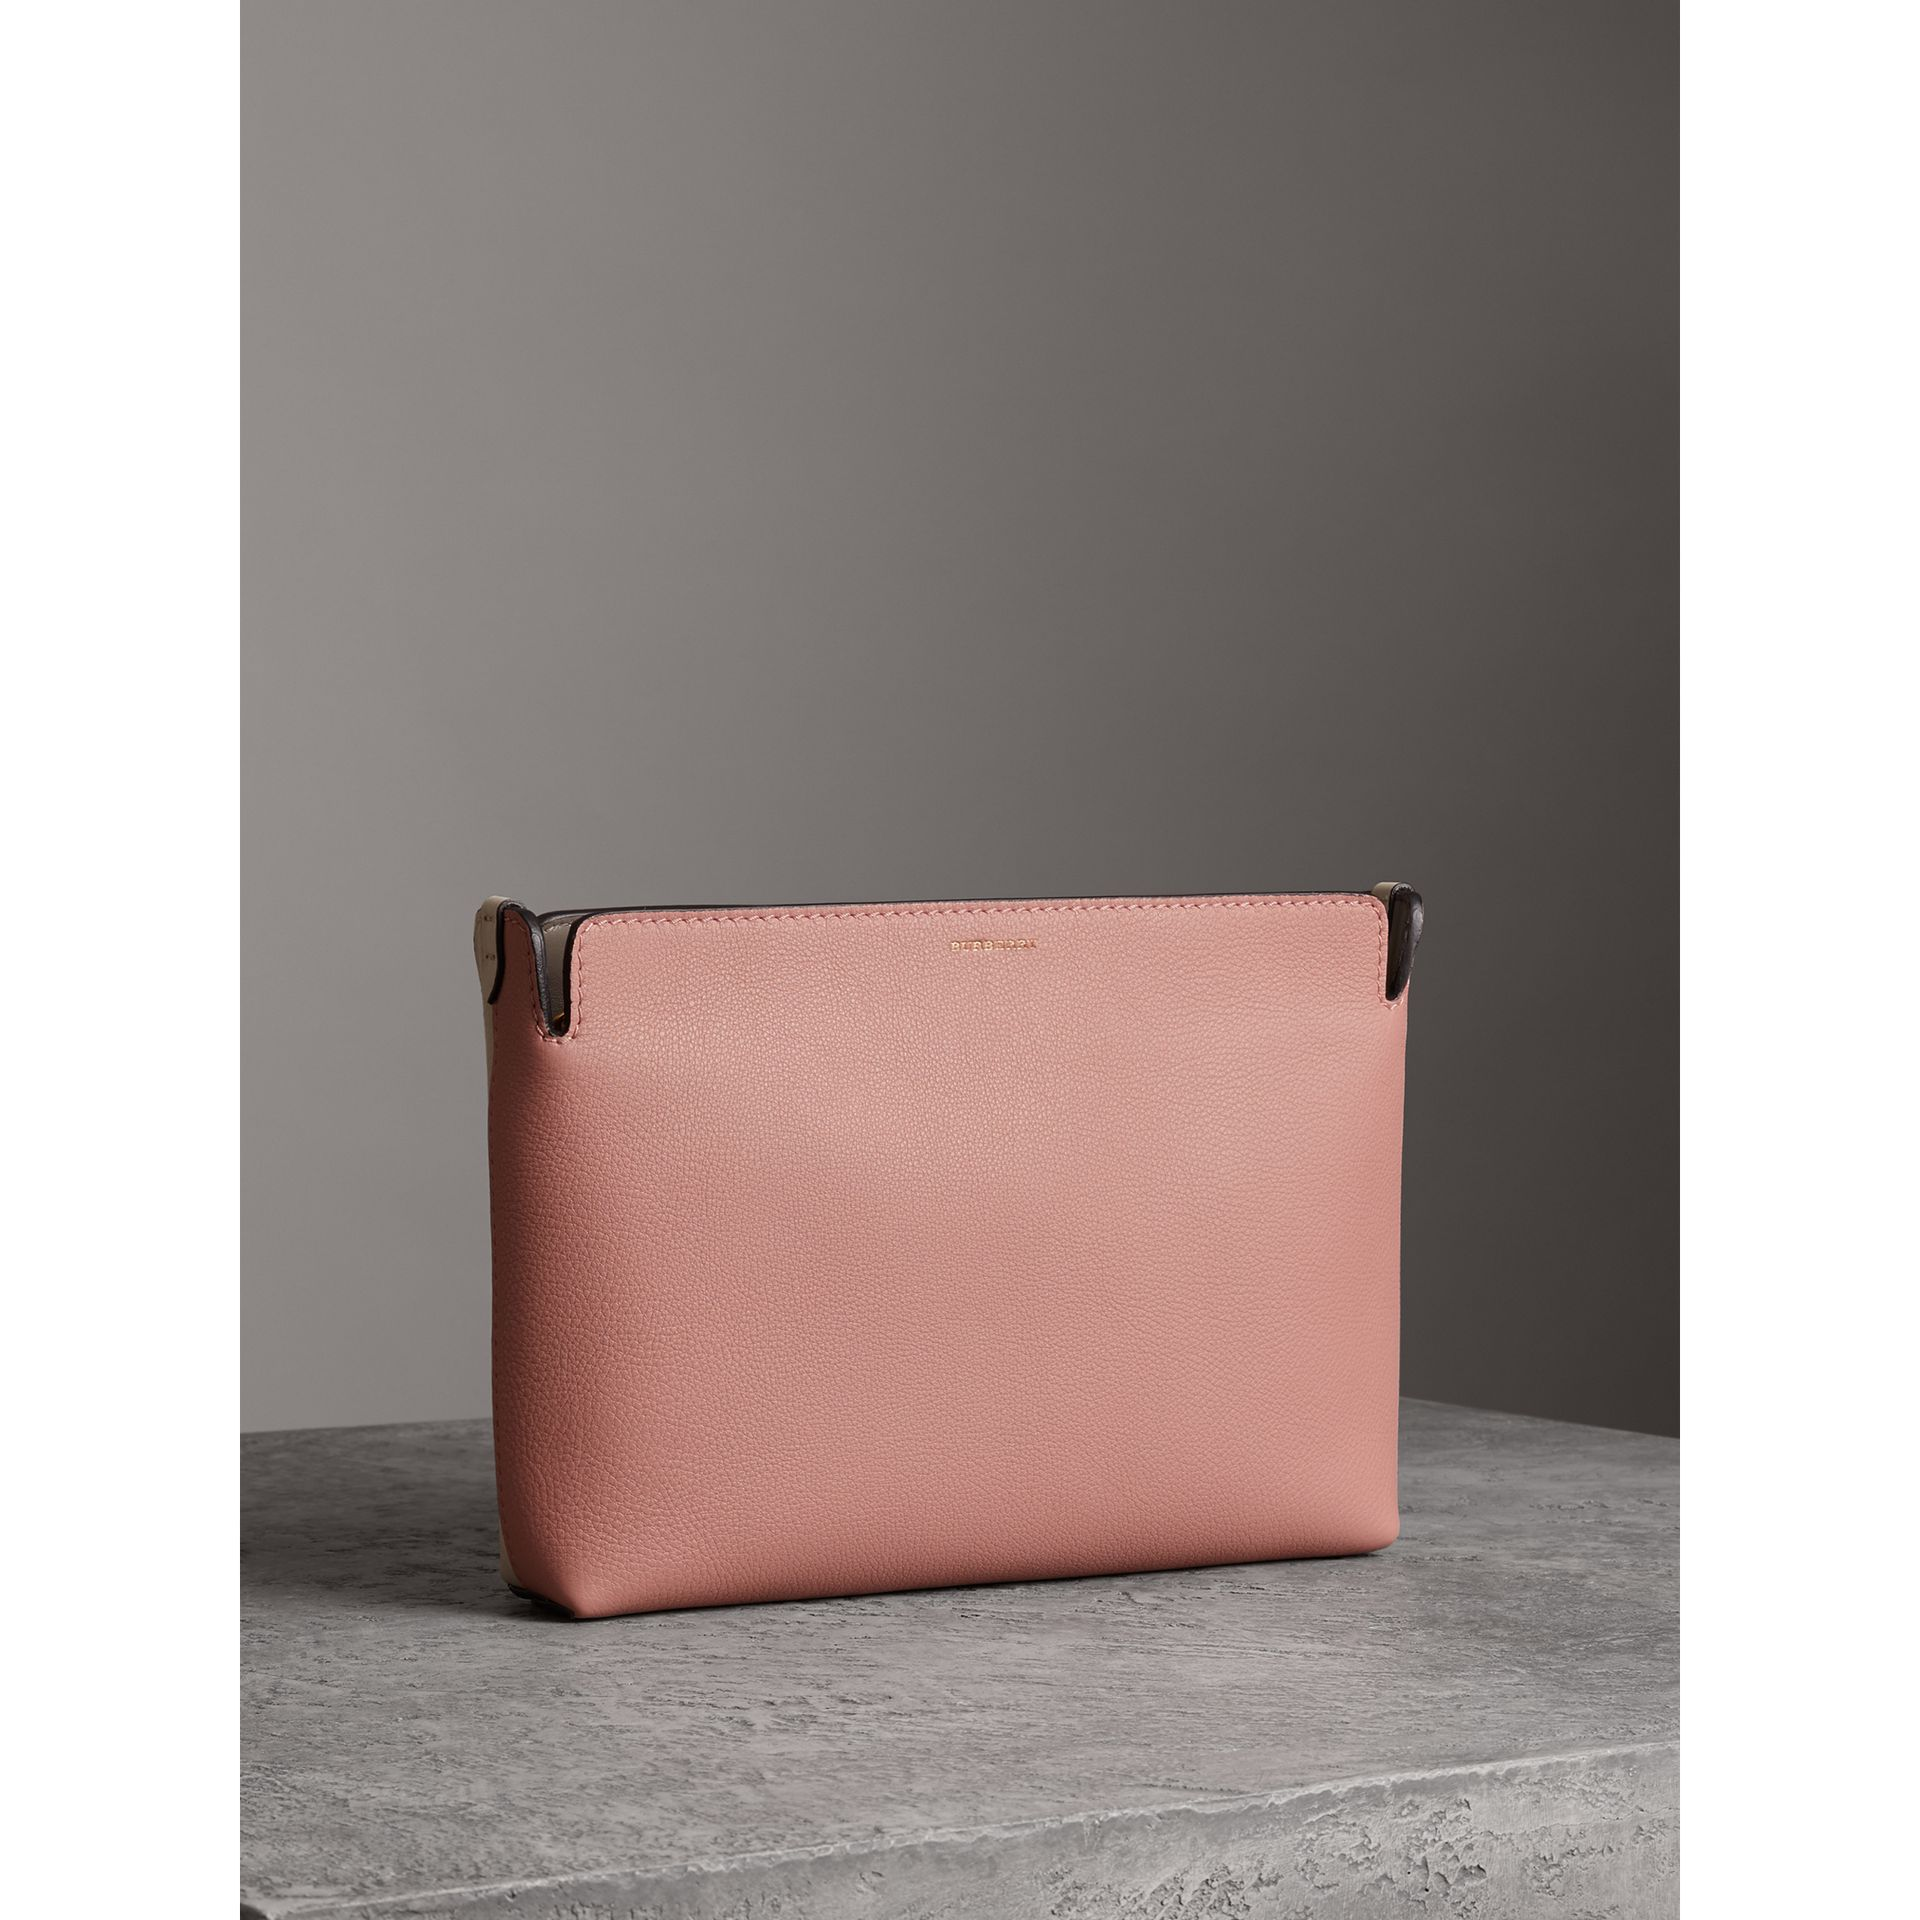 Medium Tri-tone Leather Clutch in Dusty Rose/limestone | Burberry United Kingdom - gallery image 6